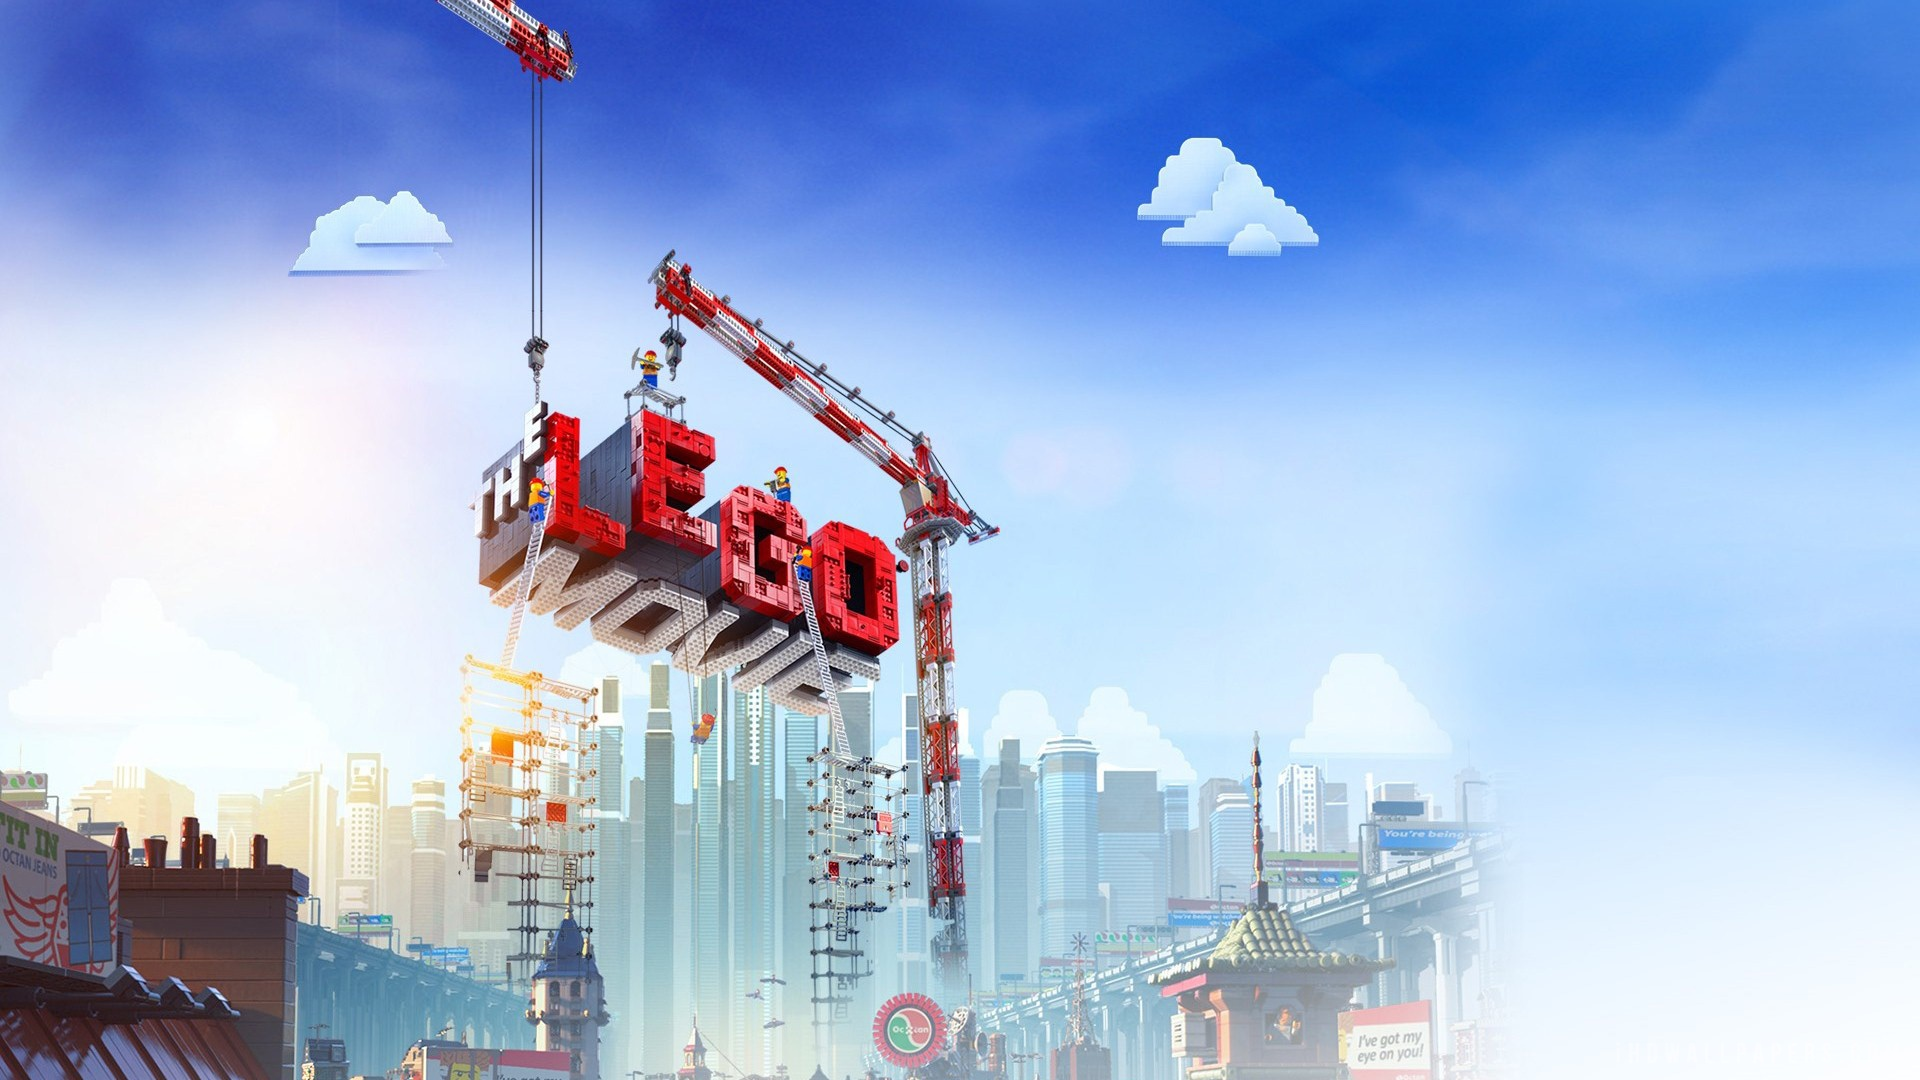 lego movie city background -#main